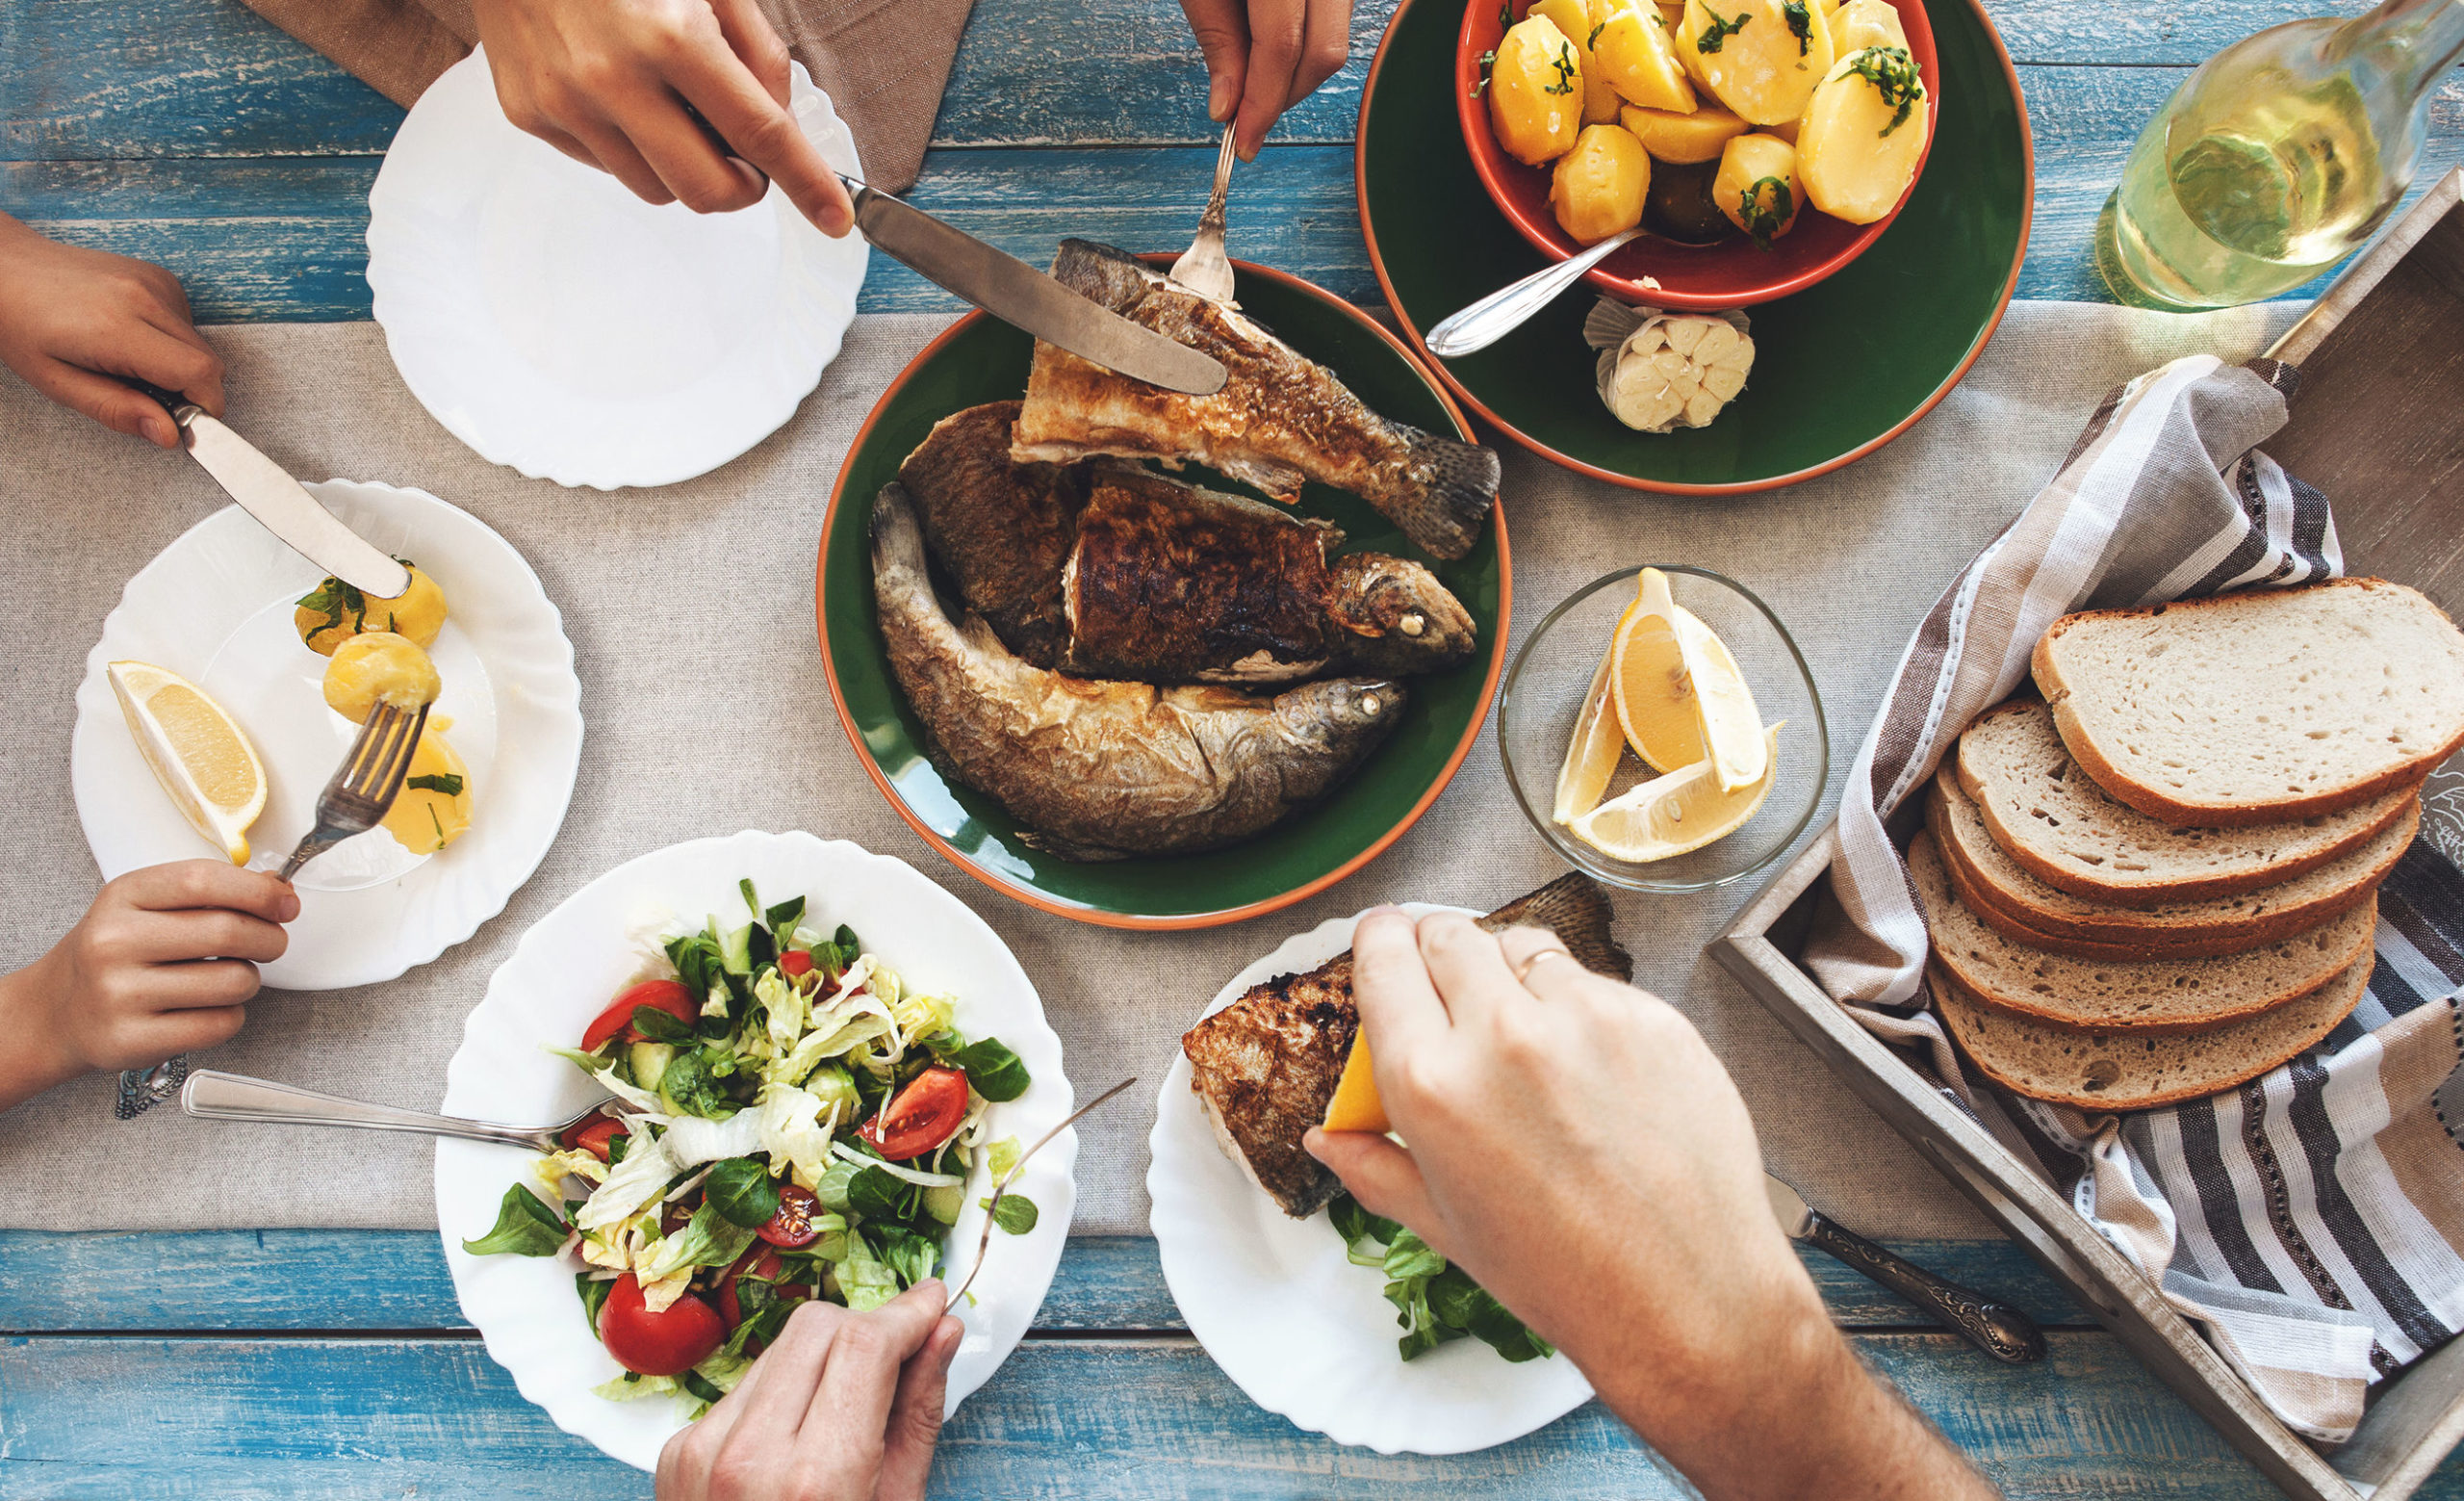 people eating fish and salad around a table